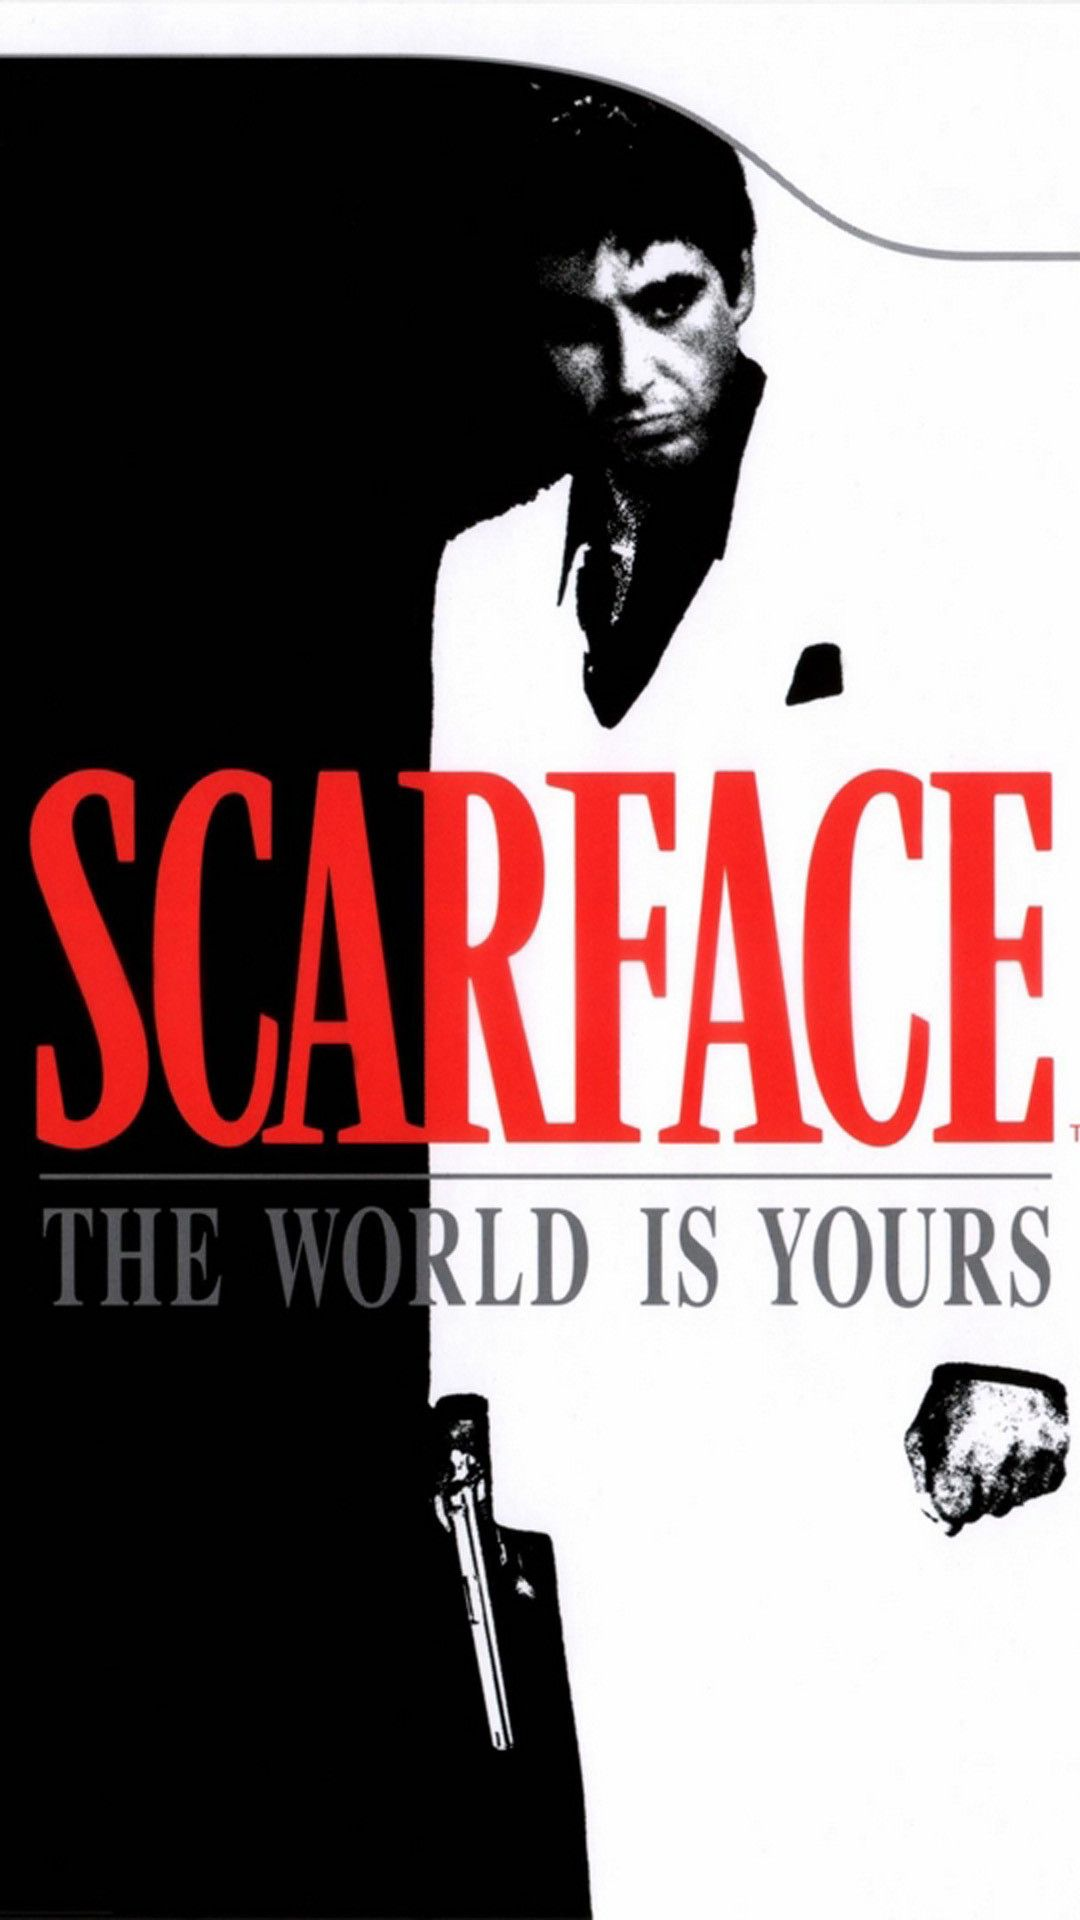 1080x1920 Scarface Wallpapers for Galaxy S5 movie posters 1080x1920